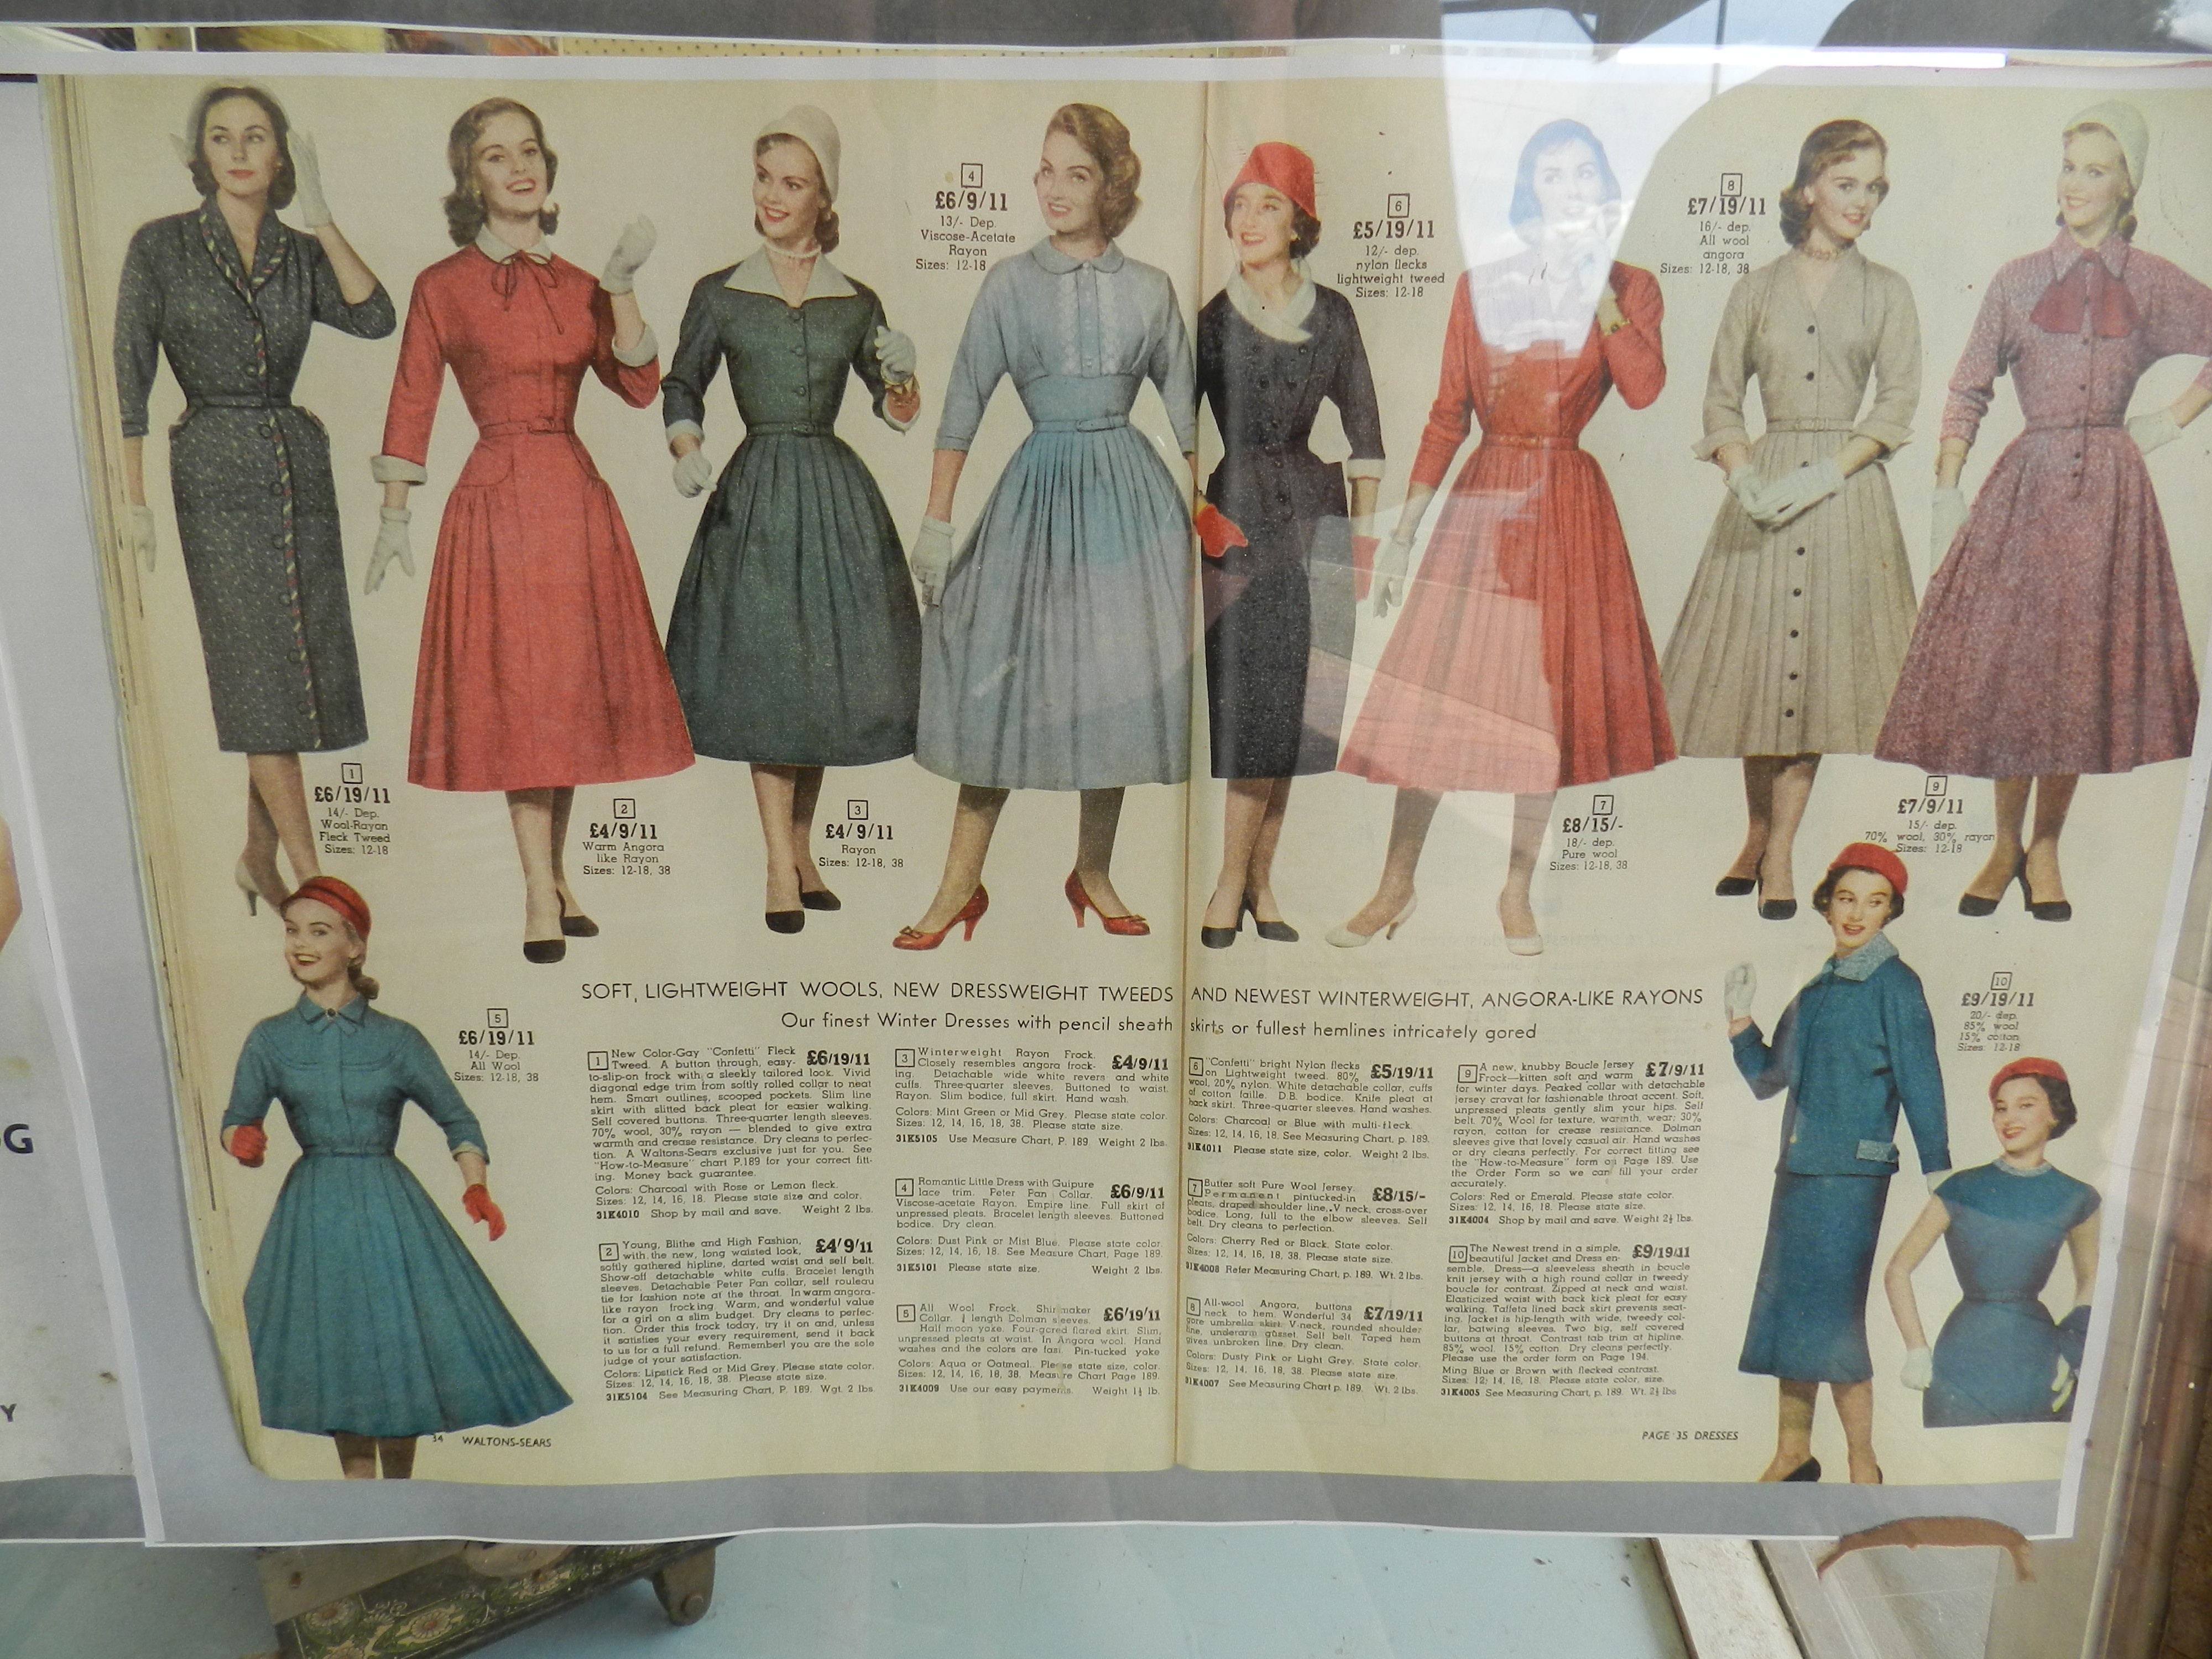 1950s fashion in australia essay Fashion started to emphasize conformity in the way people should look women were sold on a certain body shape that would best fit the latest fashions and that shape was a thin waist with defined hips and a larger but very defined and shapely bust.